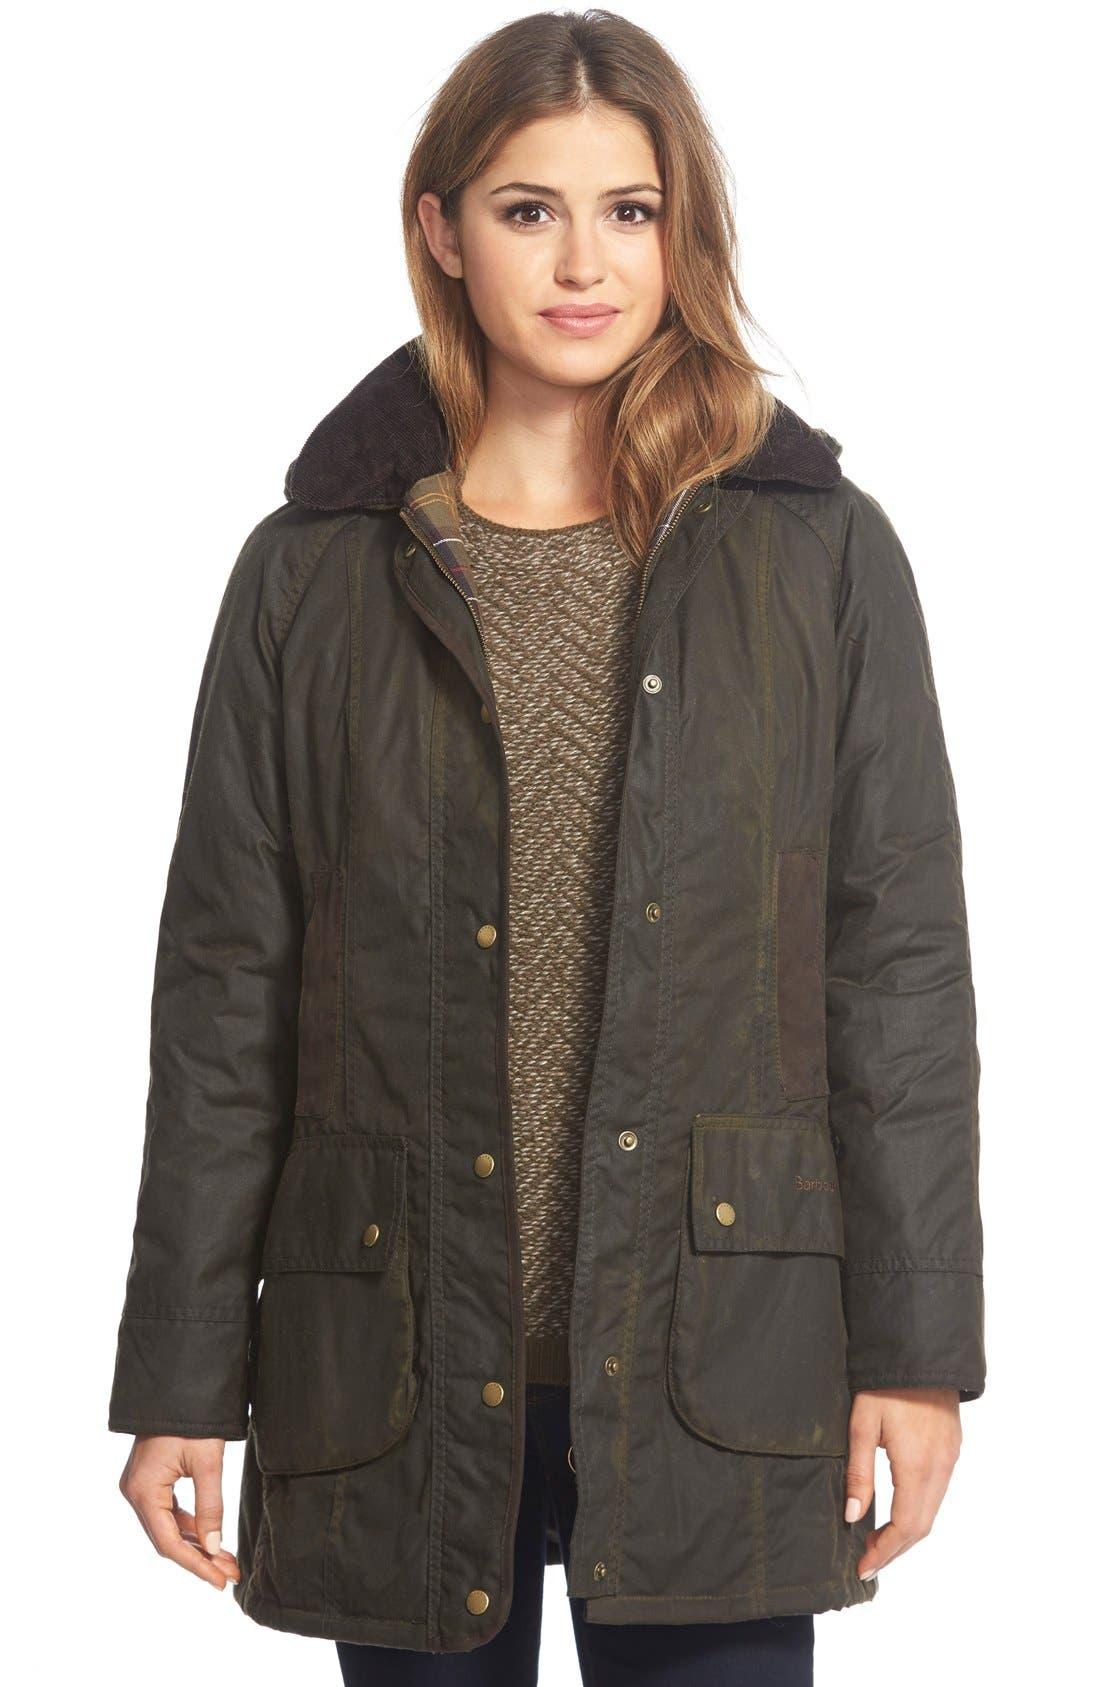 Alternate Image 1 Selected - Barbour 'Bower' Waxed CottonJacket